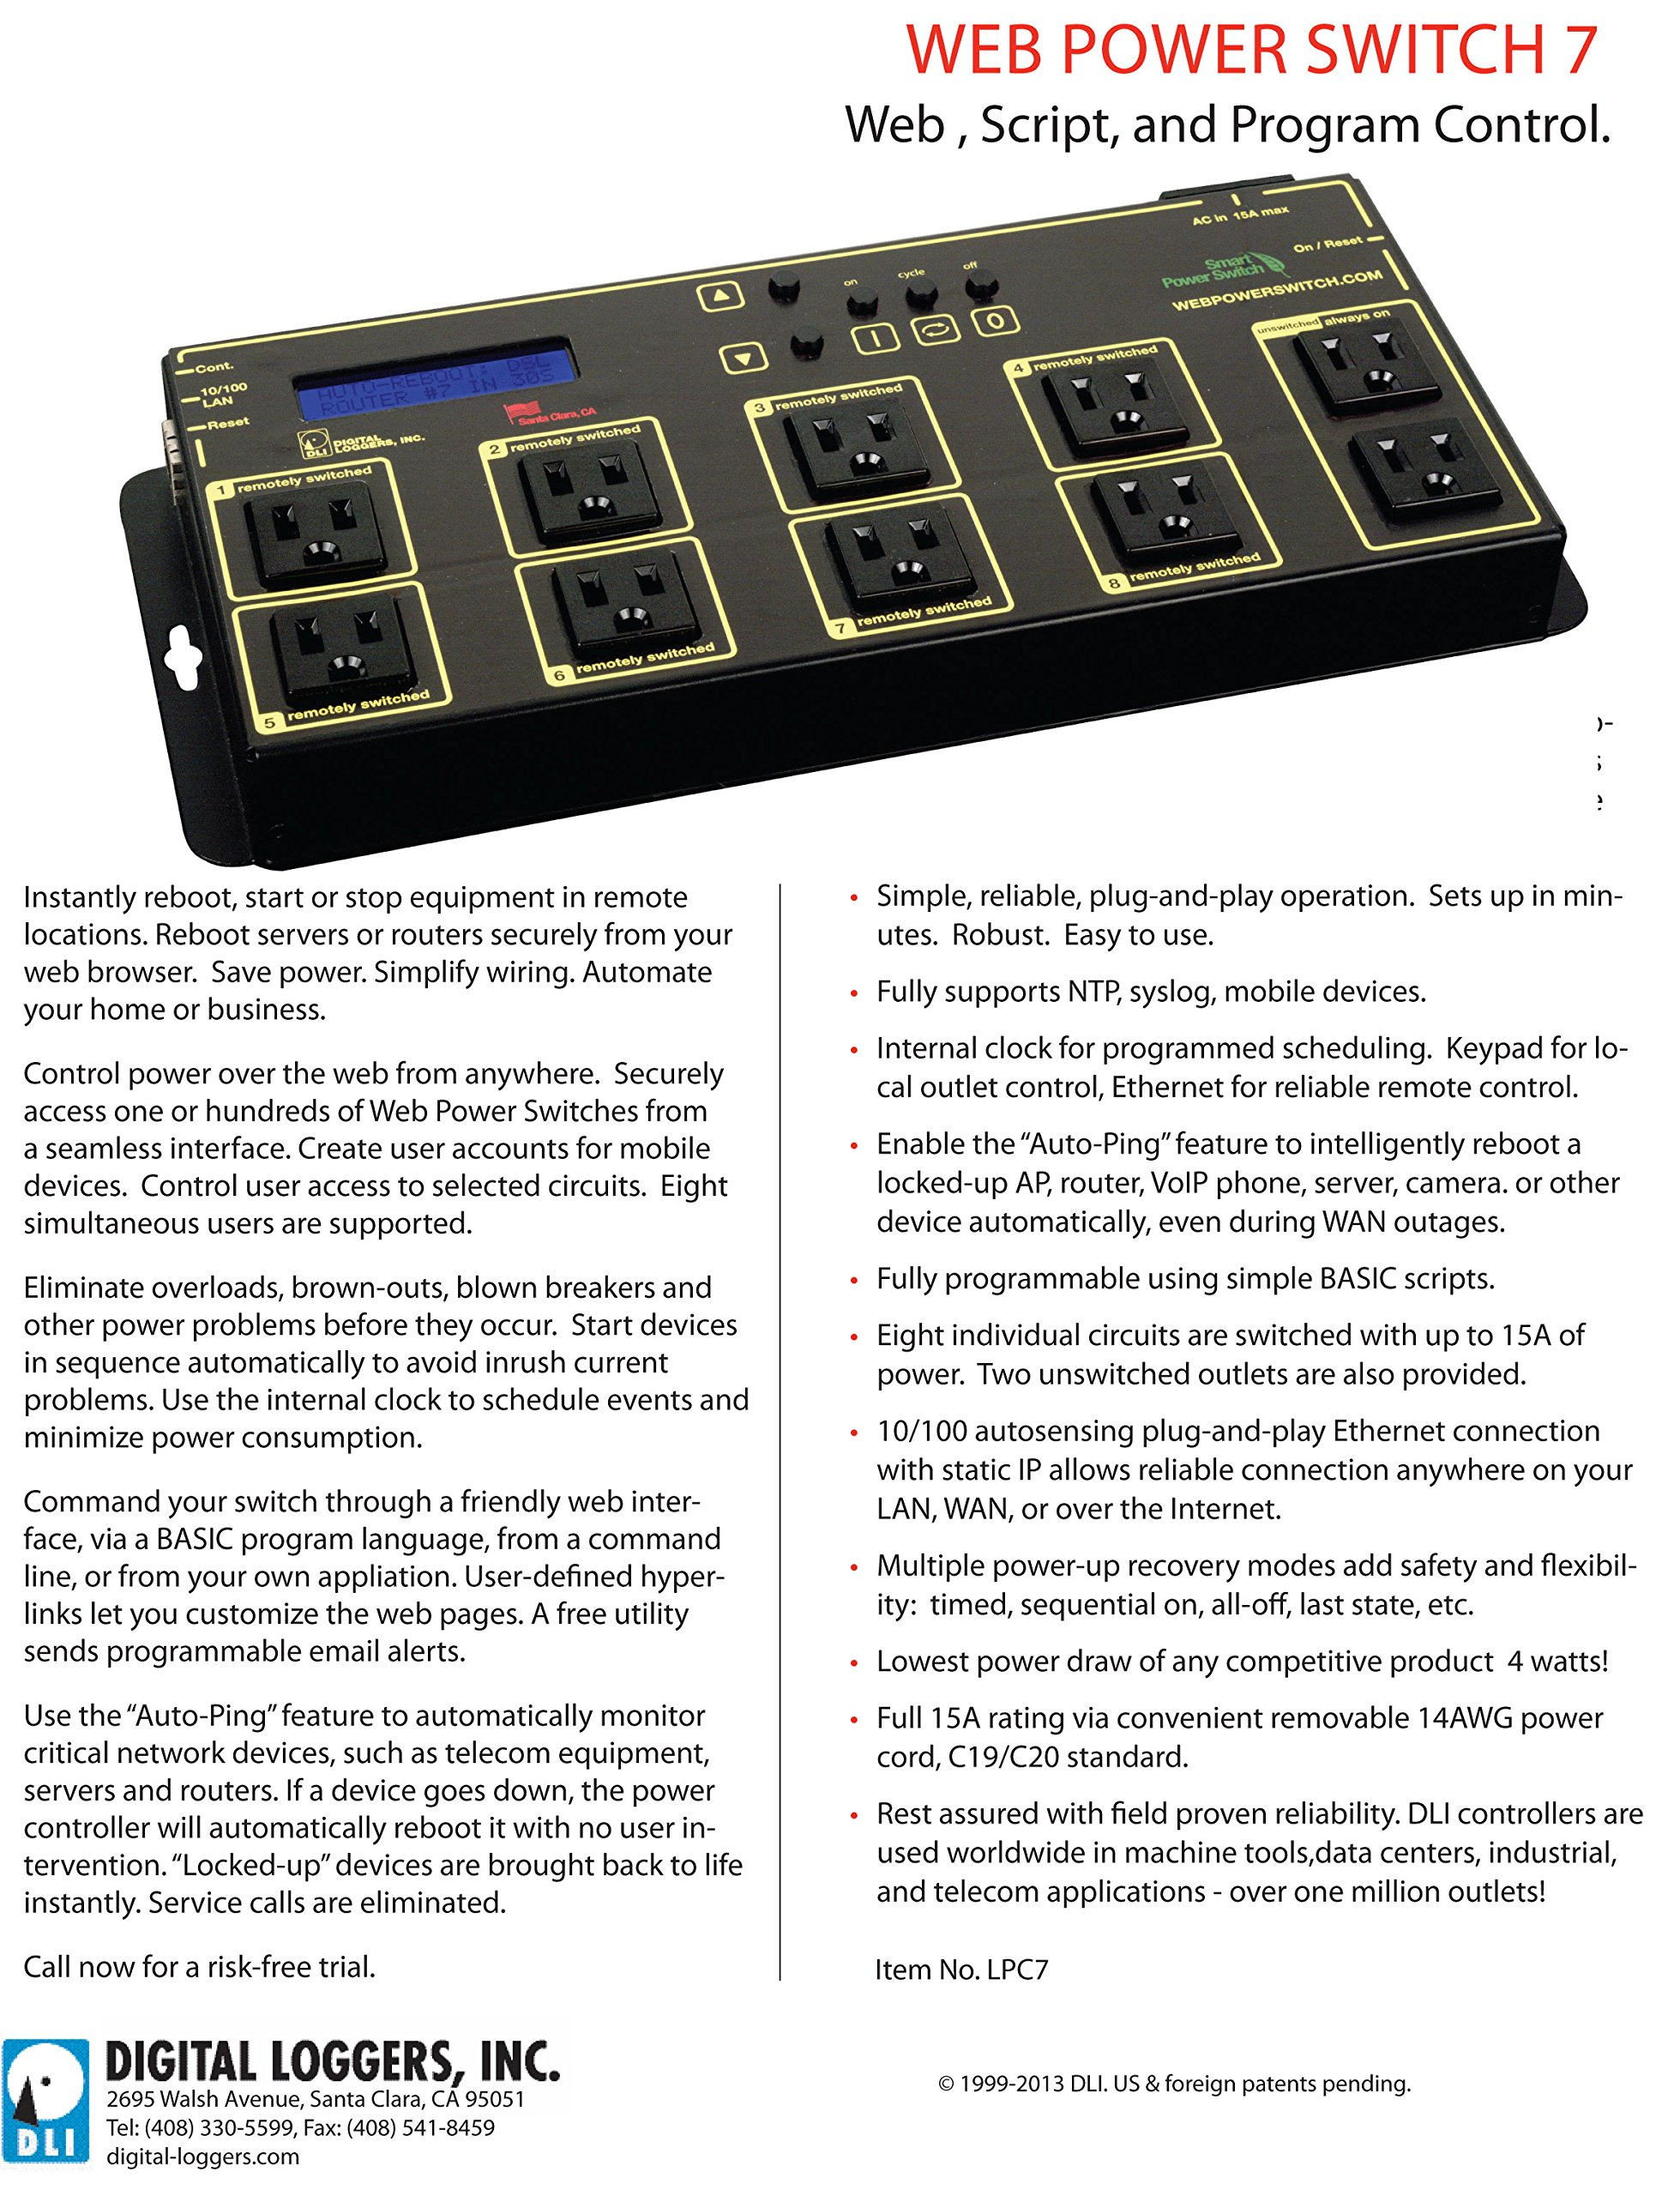 Web Power Switch 7 with HD Power Supply & Cord by DIGITAL LOGGERS (Image #5)